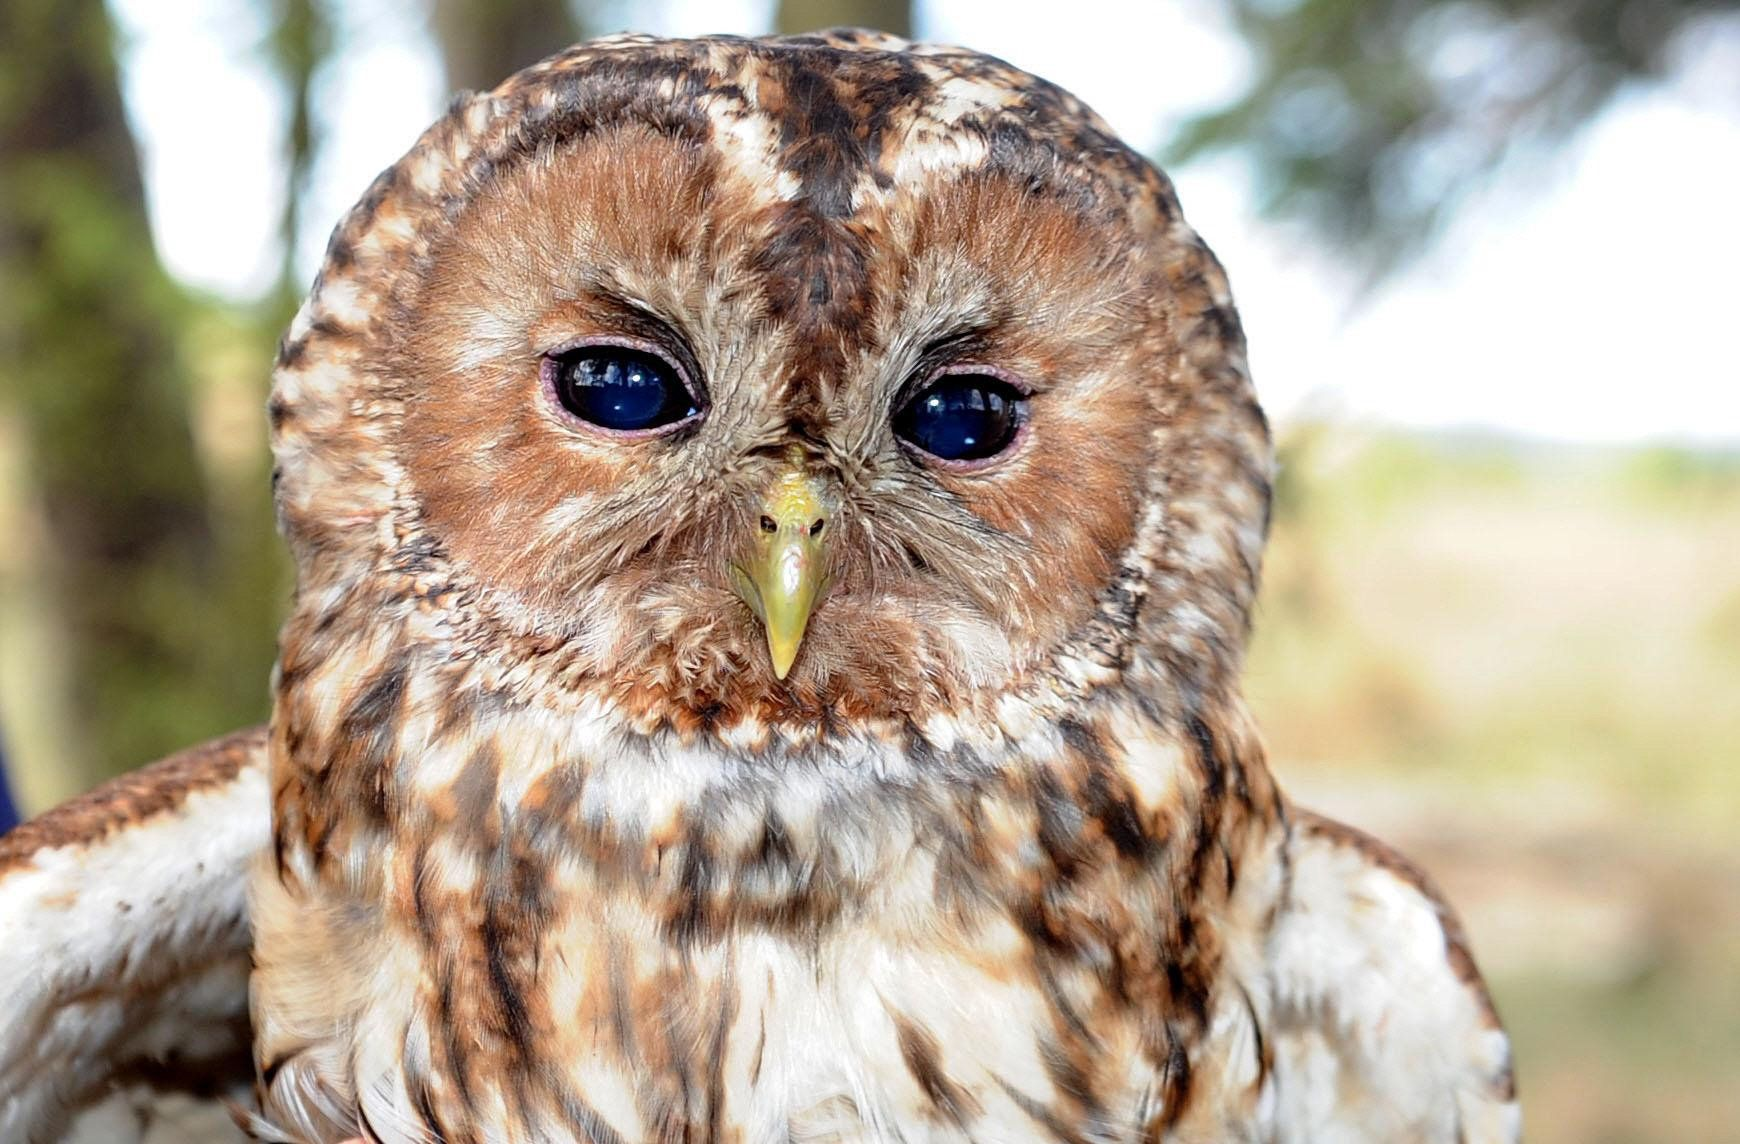 Public Urged To Listen Out For Tawny Owl's 'Twit Twoo' This Autumn Amid Fears of Its